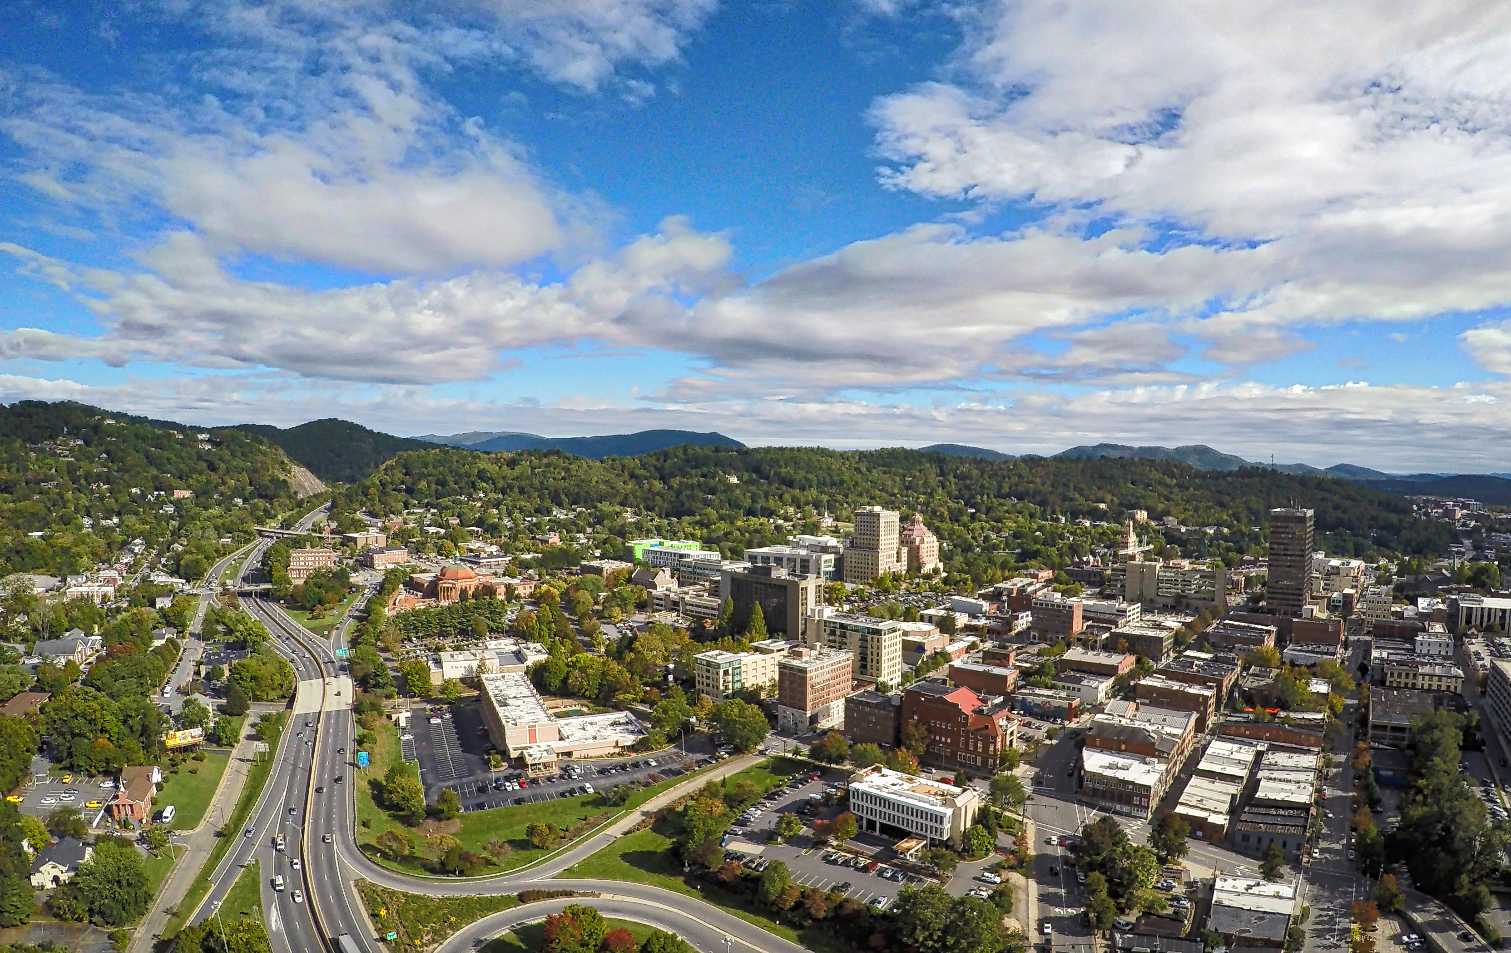 downtown asheville from above sunny day  .jpeg